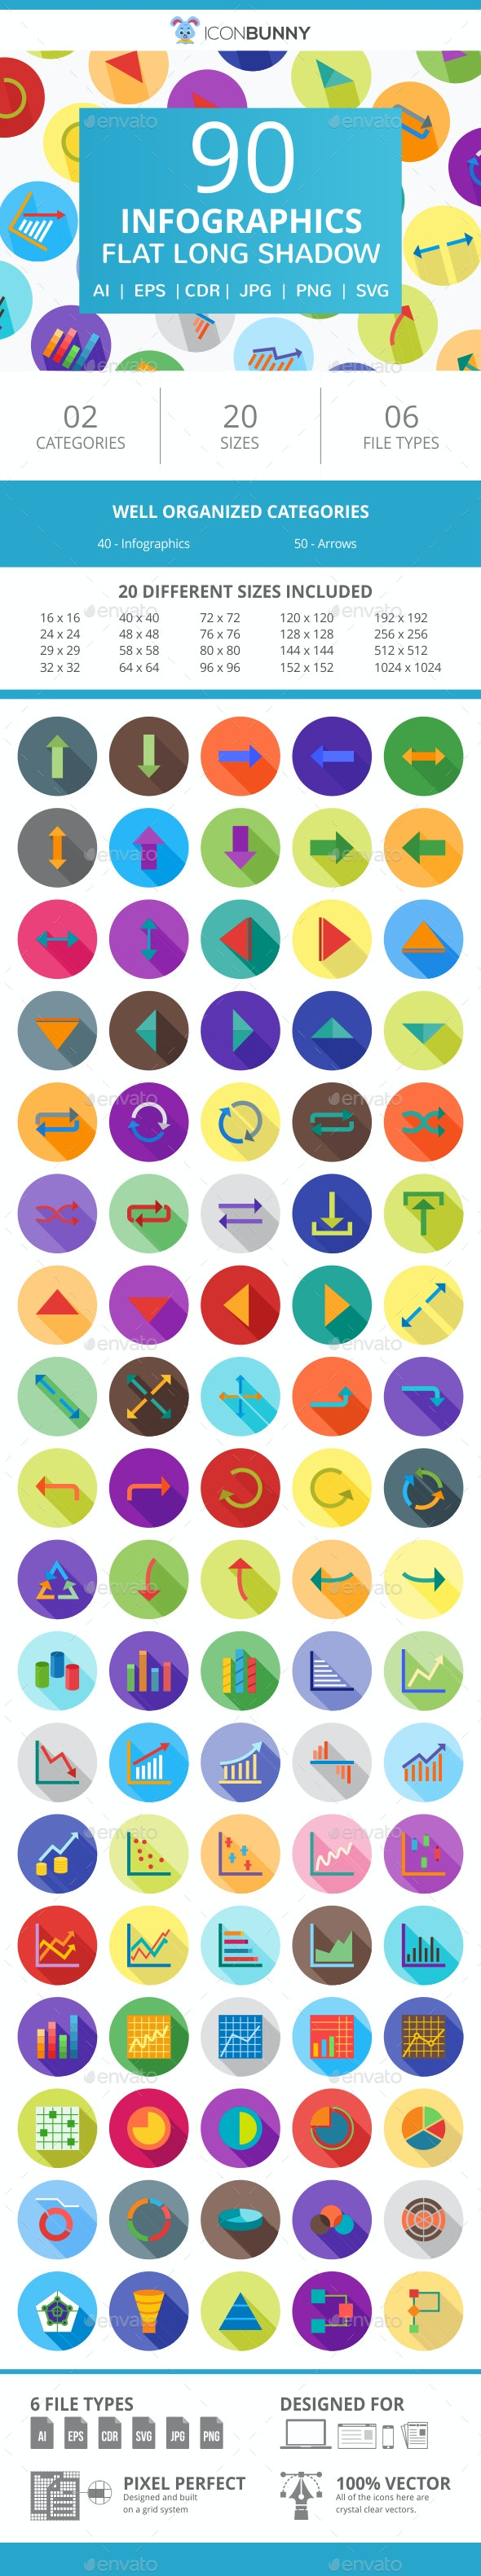 90 Infographics Flat Long Shadow Icons - Icons